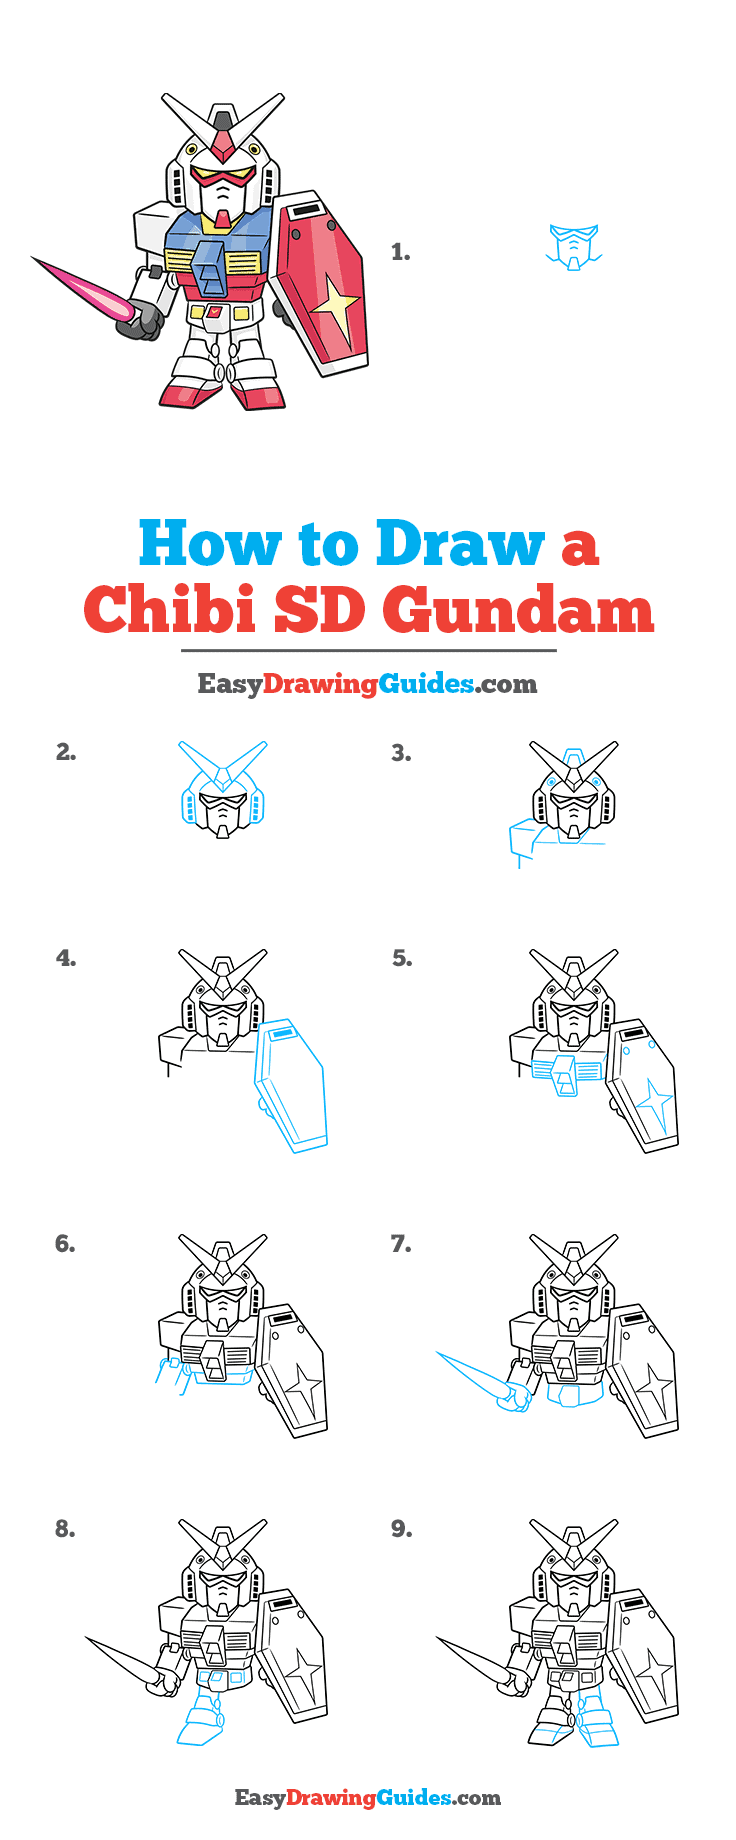 How to Draw Chibi SD Gundam